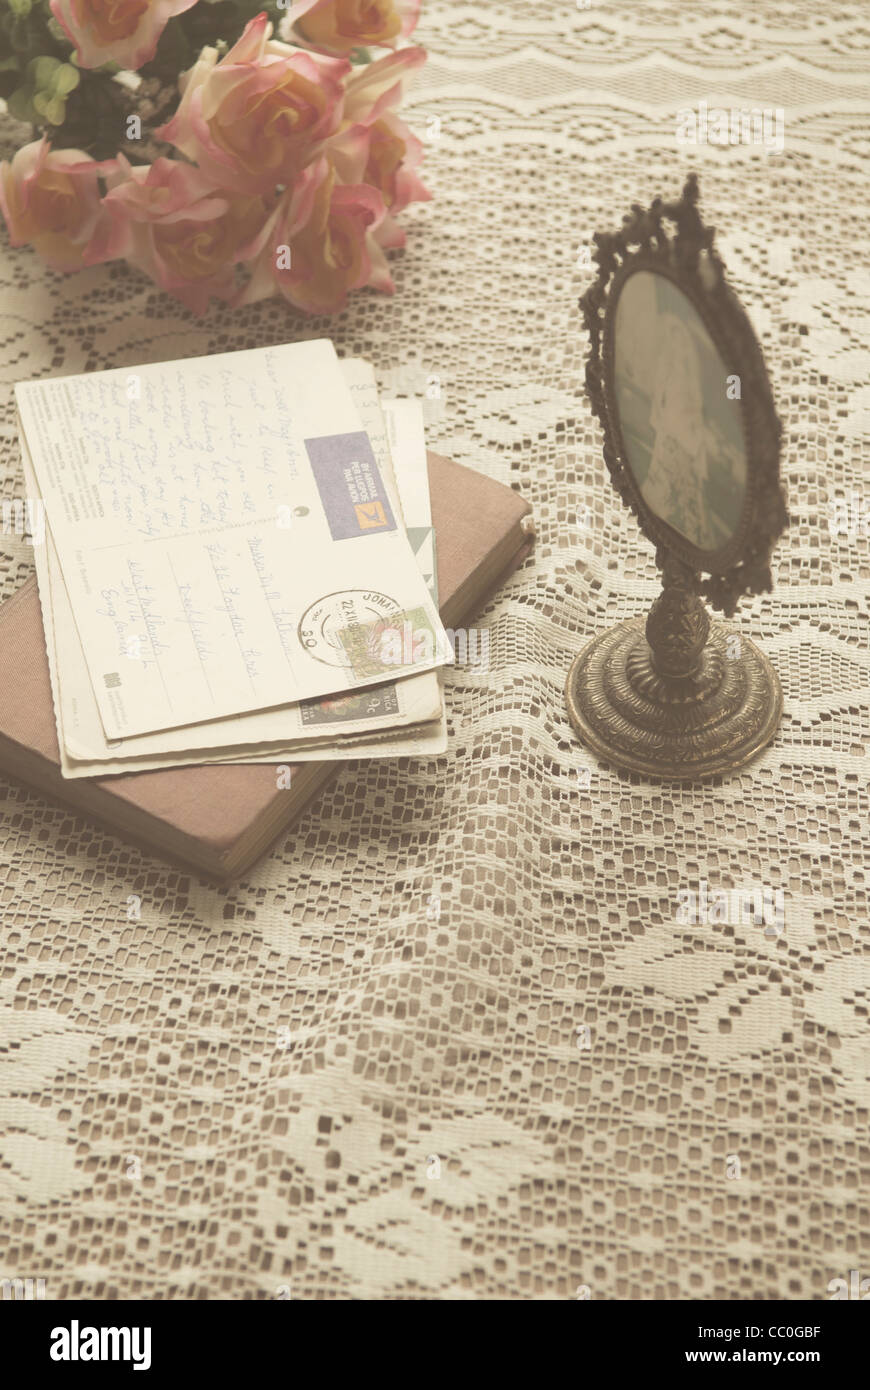 Old postcards over a book next to oval shaped picture frame and roses - Stock Image